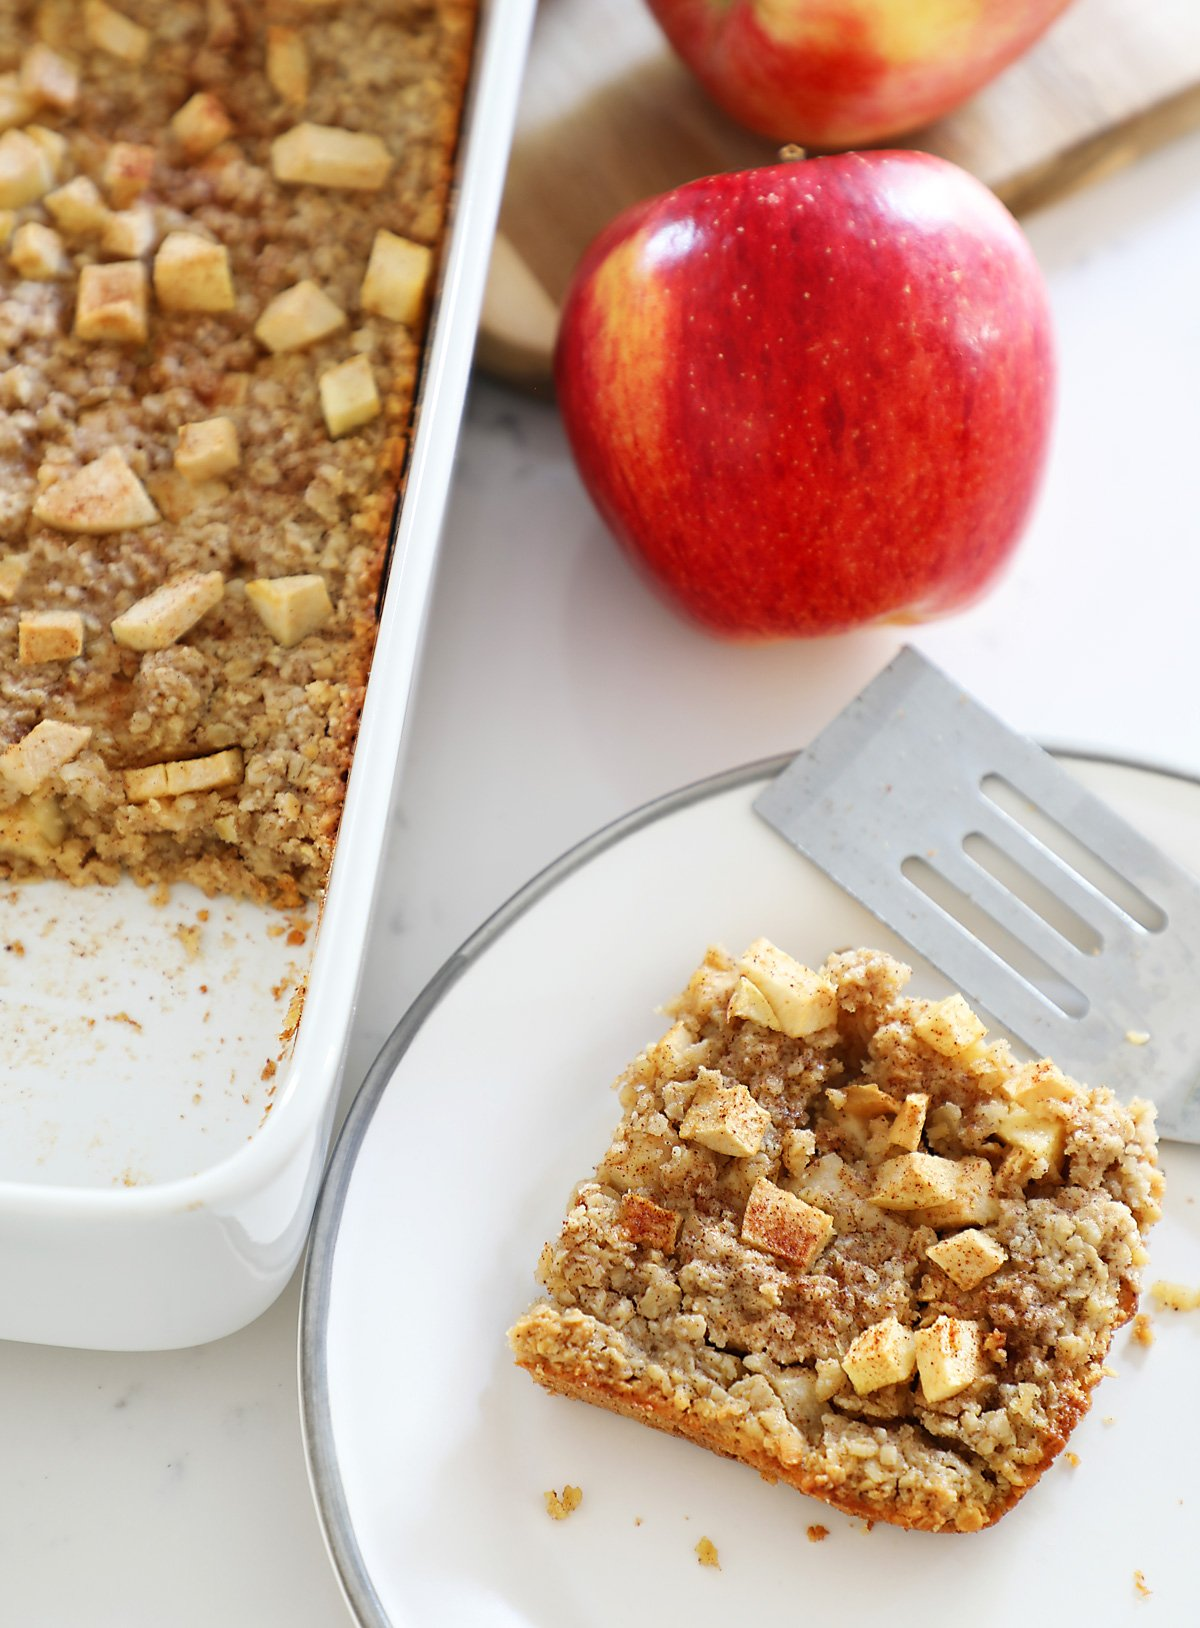 Baked Apple Oatmeal Recipe